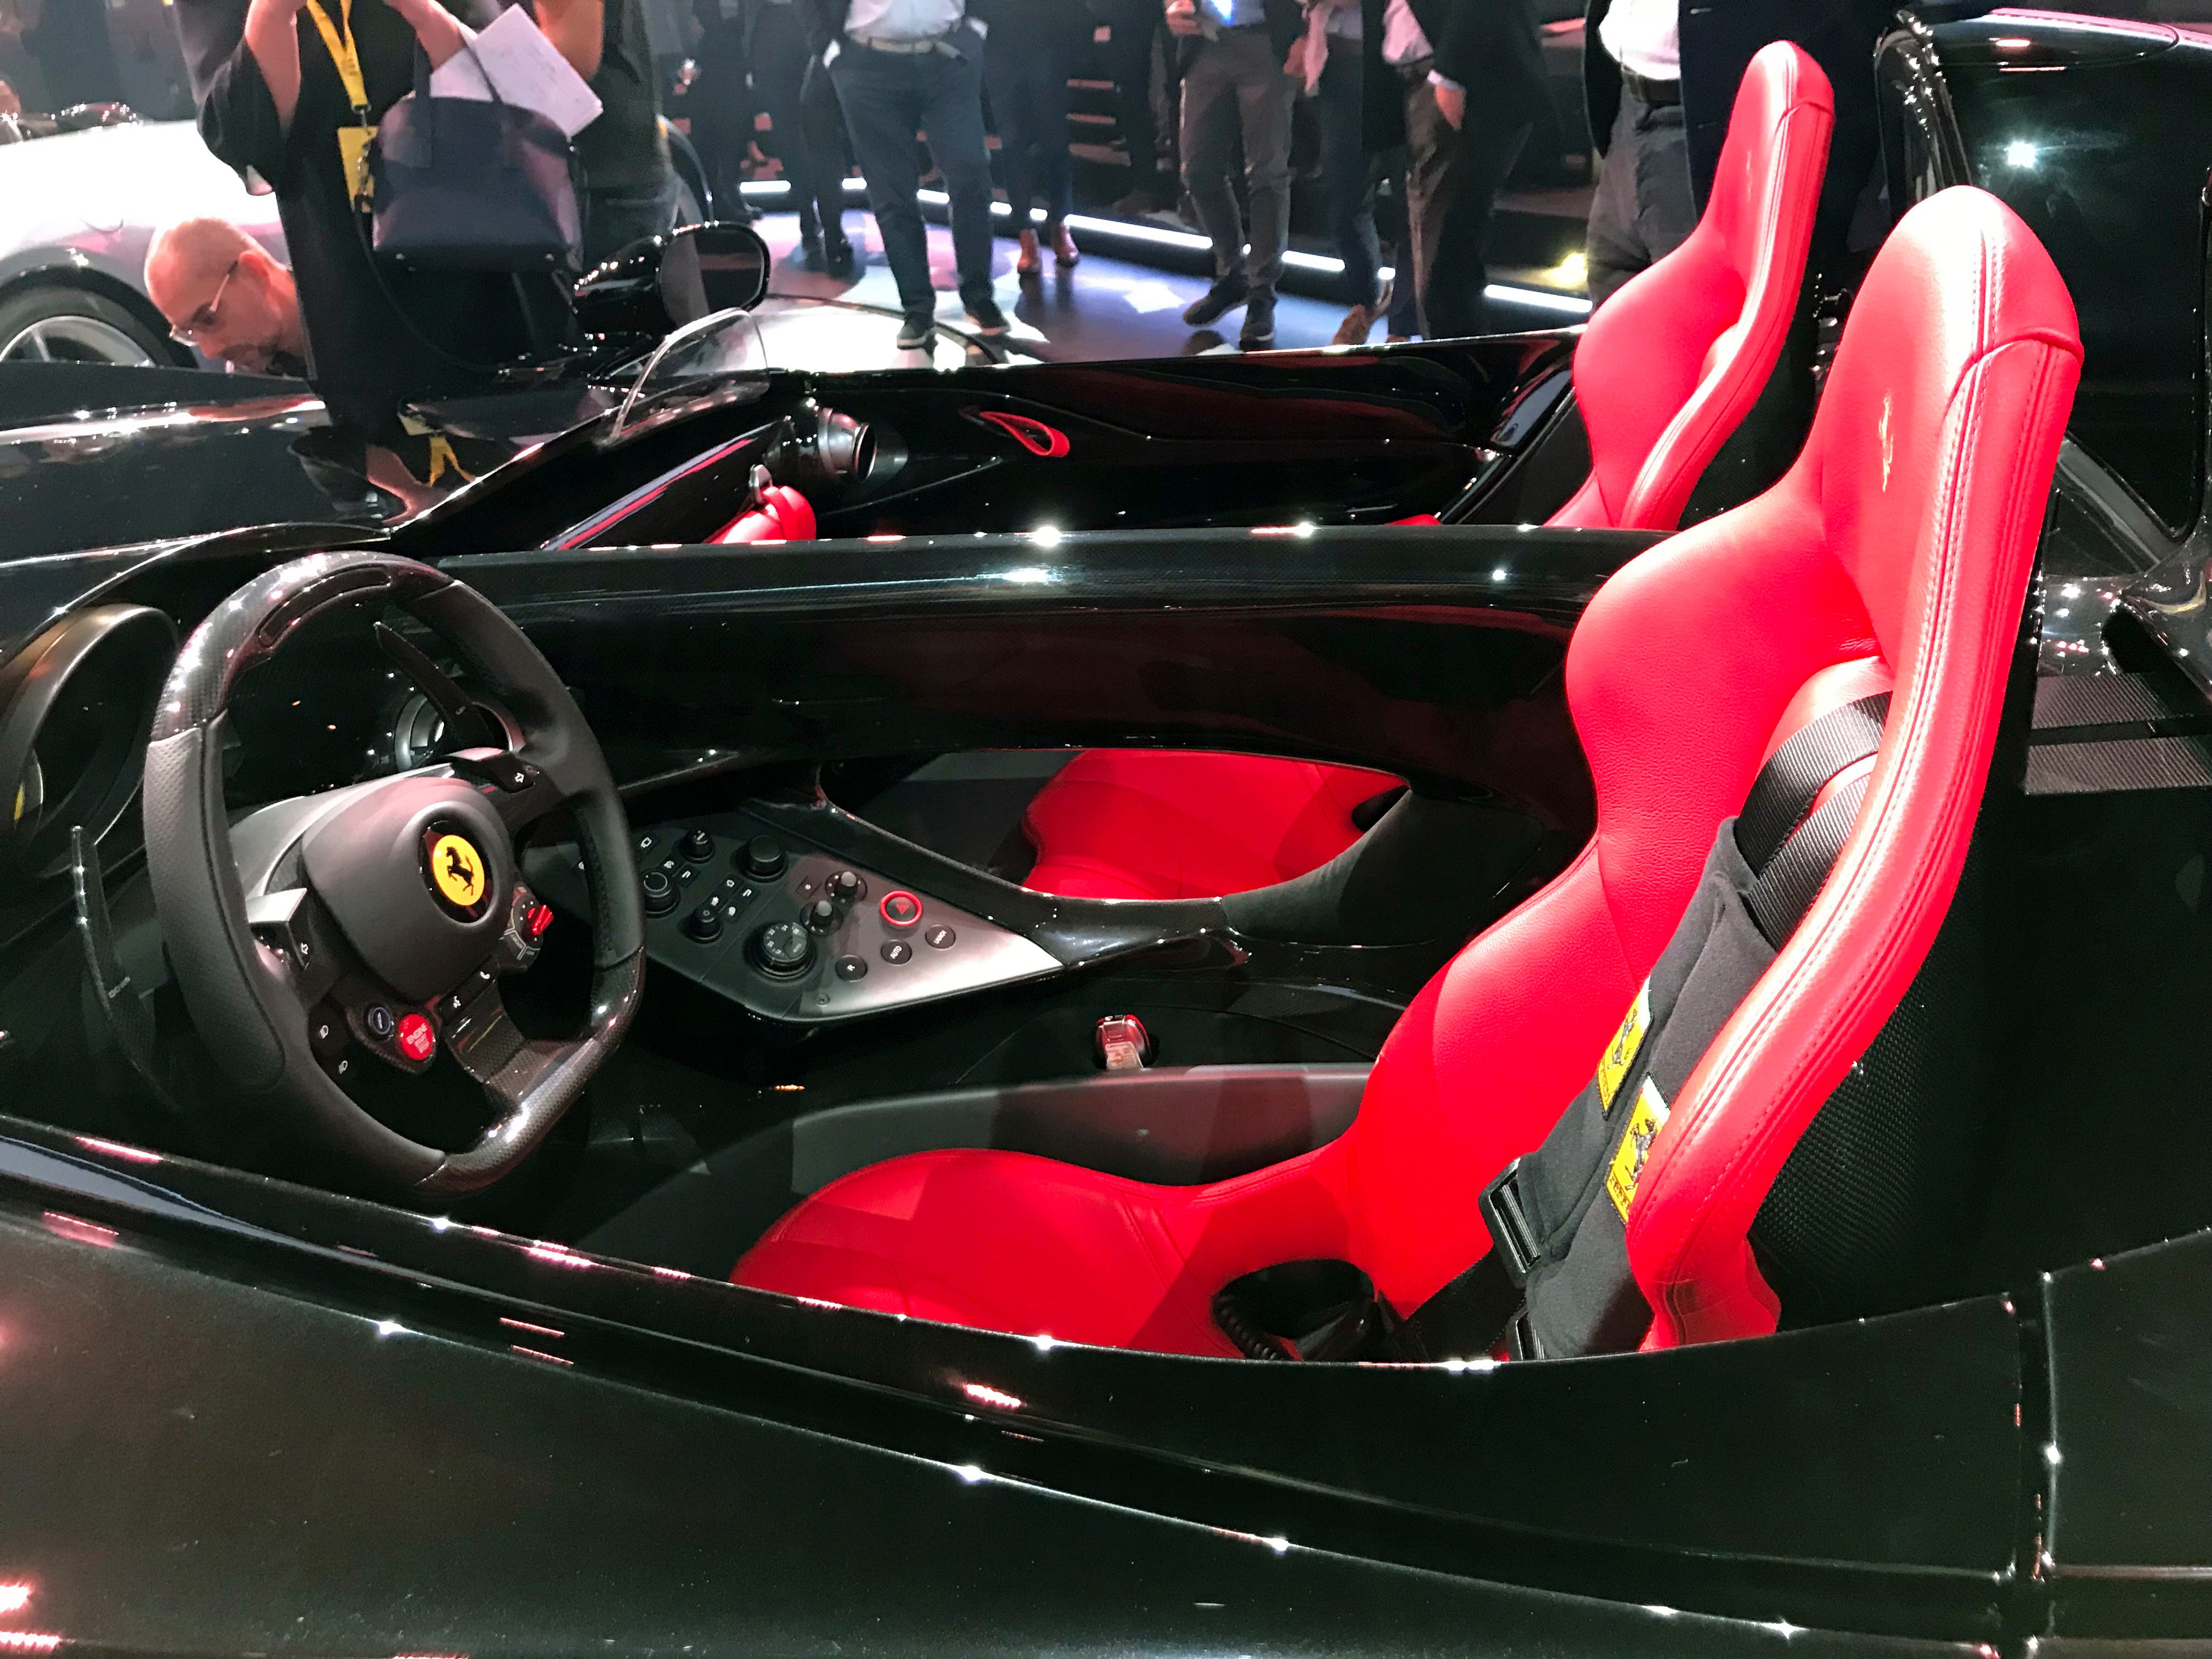 """The Ferrari Monza SP2 is displayed in Maranello, Italy, Tuesday, Sept. 18, 2018. Sportscar maker Ferrari has unveiled two updated versions of its classic open-top """"barchetta"""" racing model as it briefs investors on a new five-year business plan."""